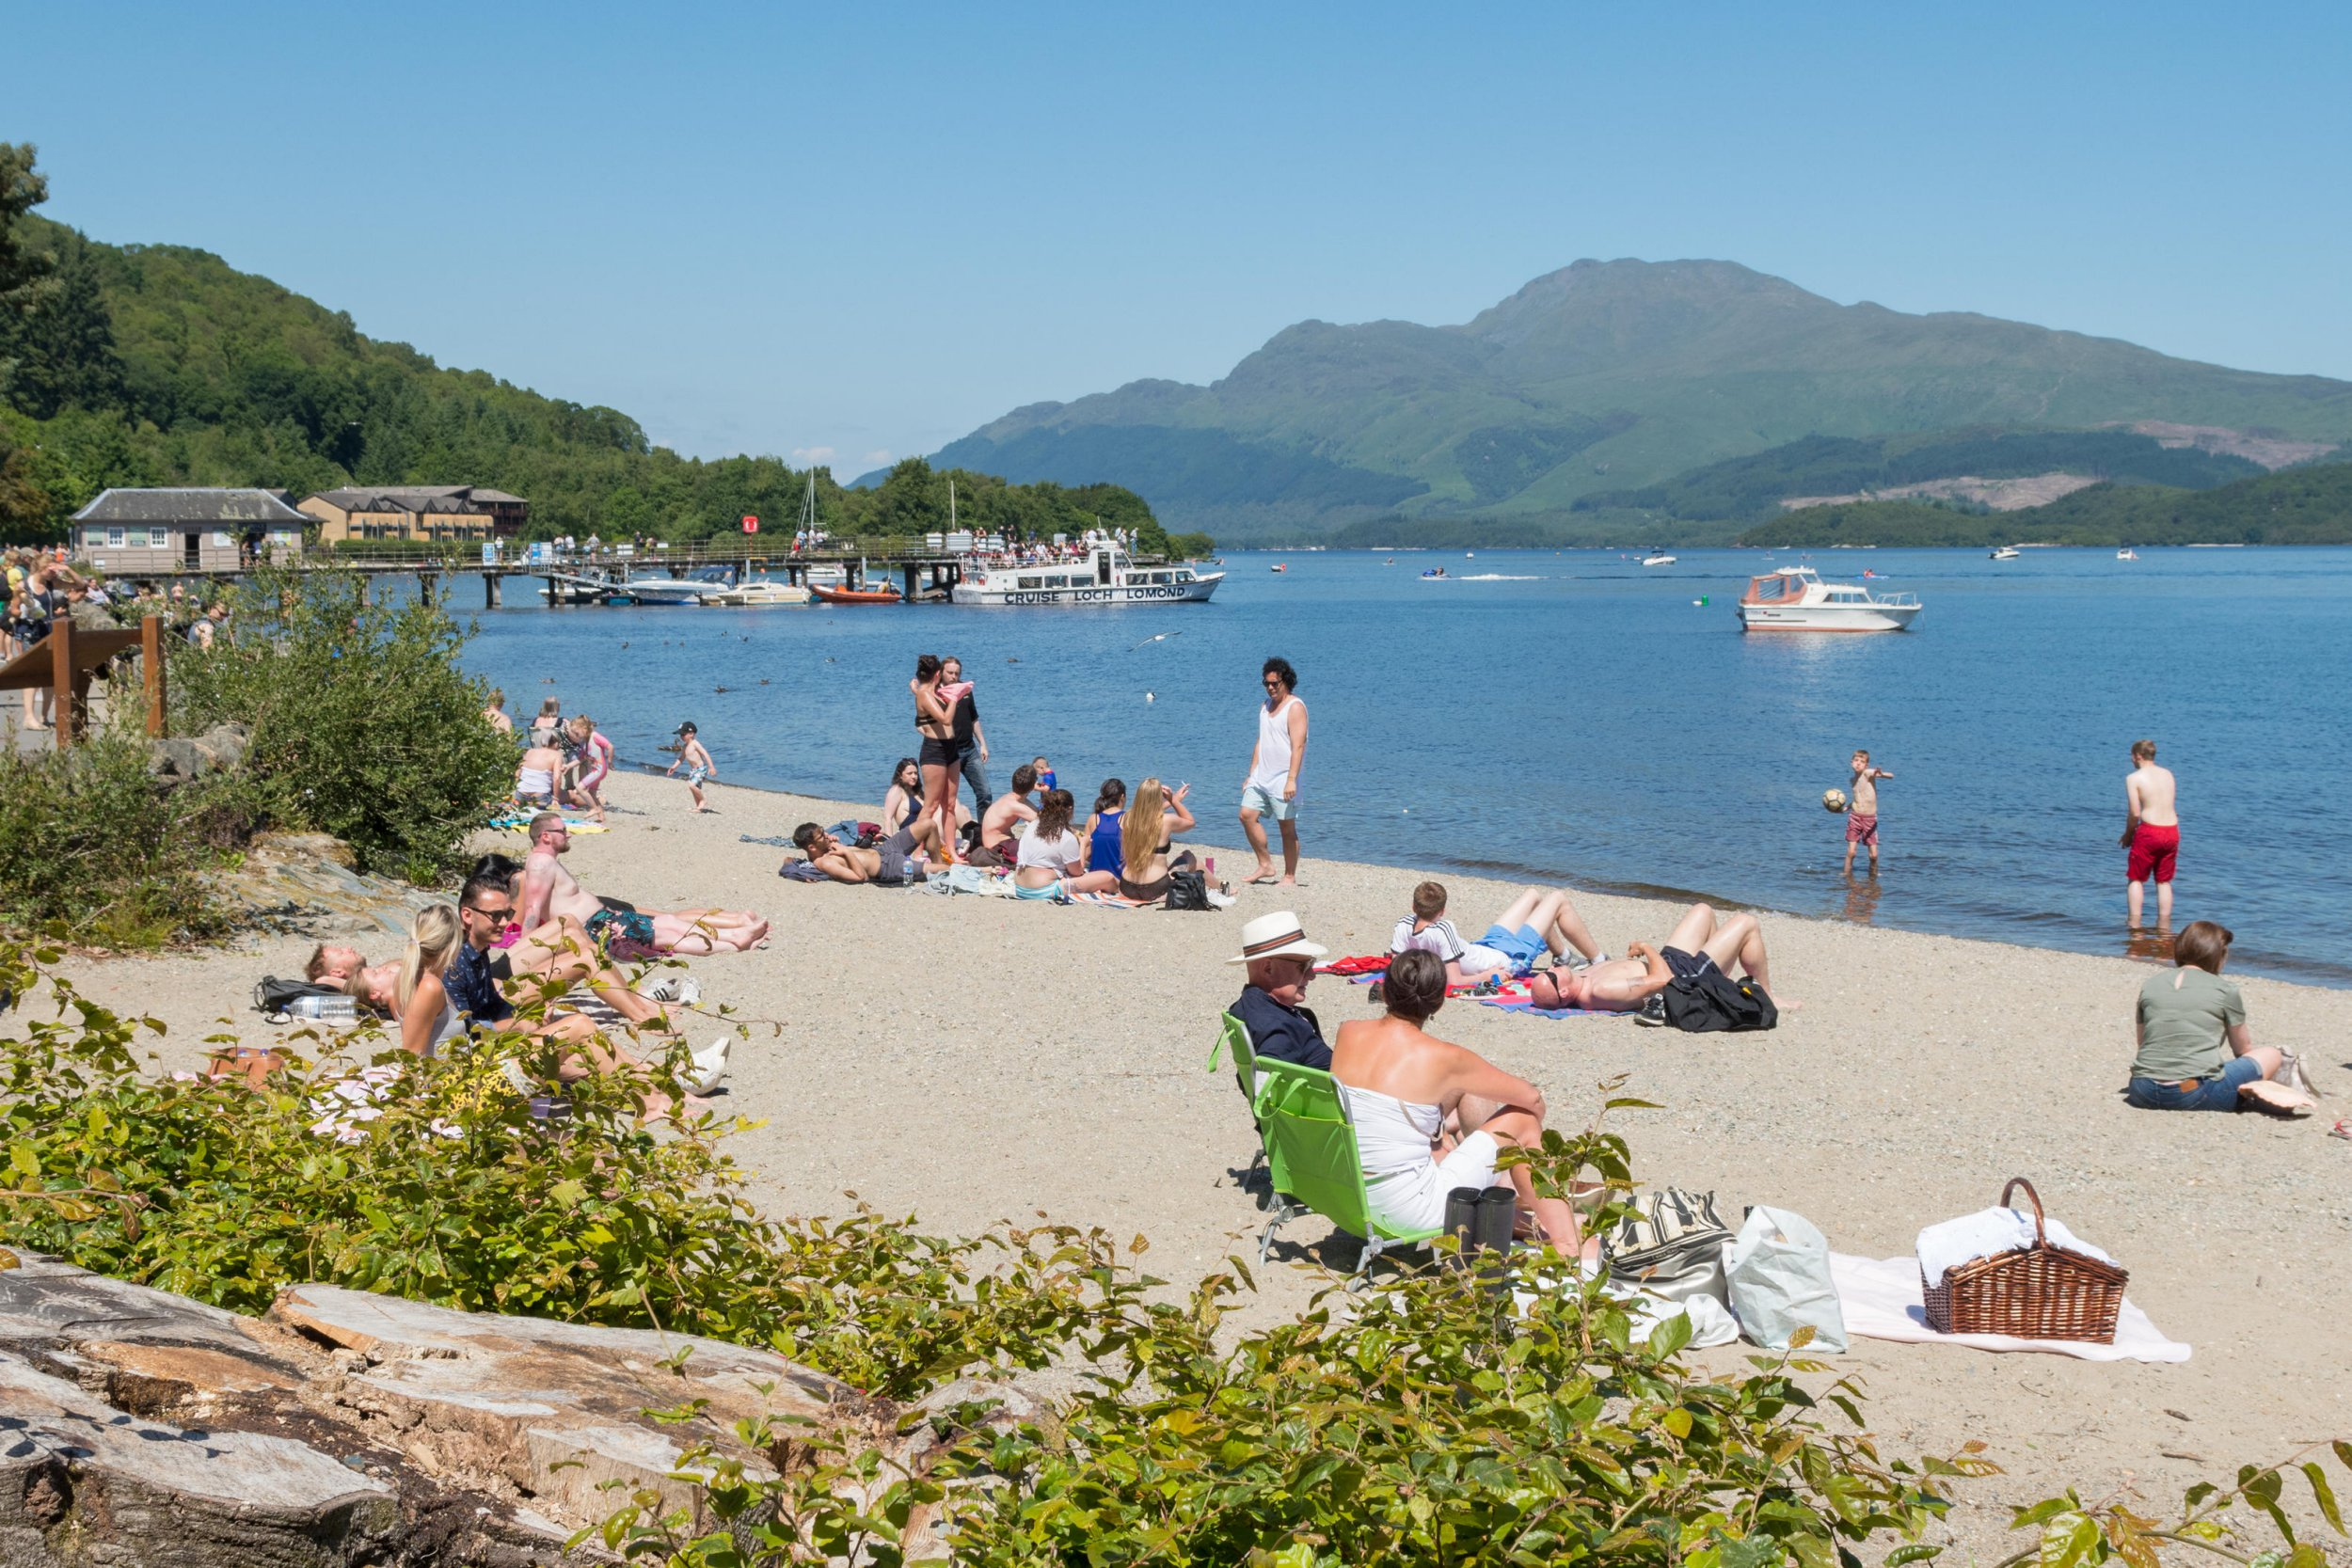 Alamy Live News. P6M6J0 Luss, Loch Lomond, Scotland, UK - 1 July 2018: uk weather - Loch Lomond looking as pretty as a postcard as tourists and locals bask in the heat Credit: Kay Roxby/Alamy Live News This is an Alamy Live News image and may not be part of your current Alamy deal . If you are unsure, please contact our sales team to check.